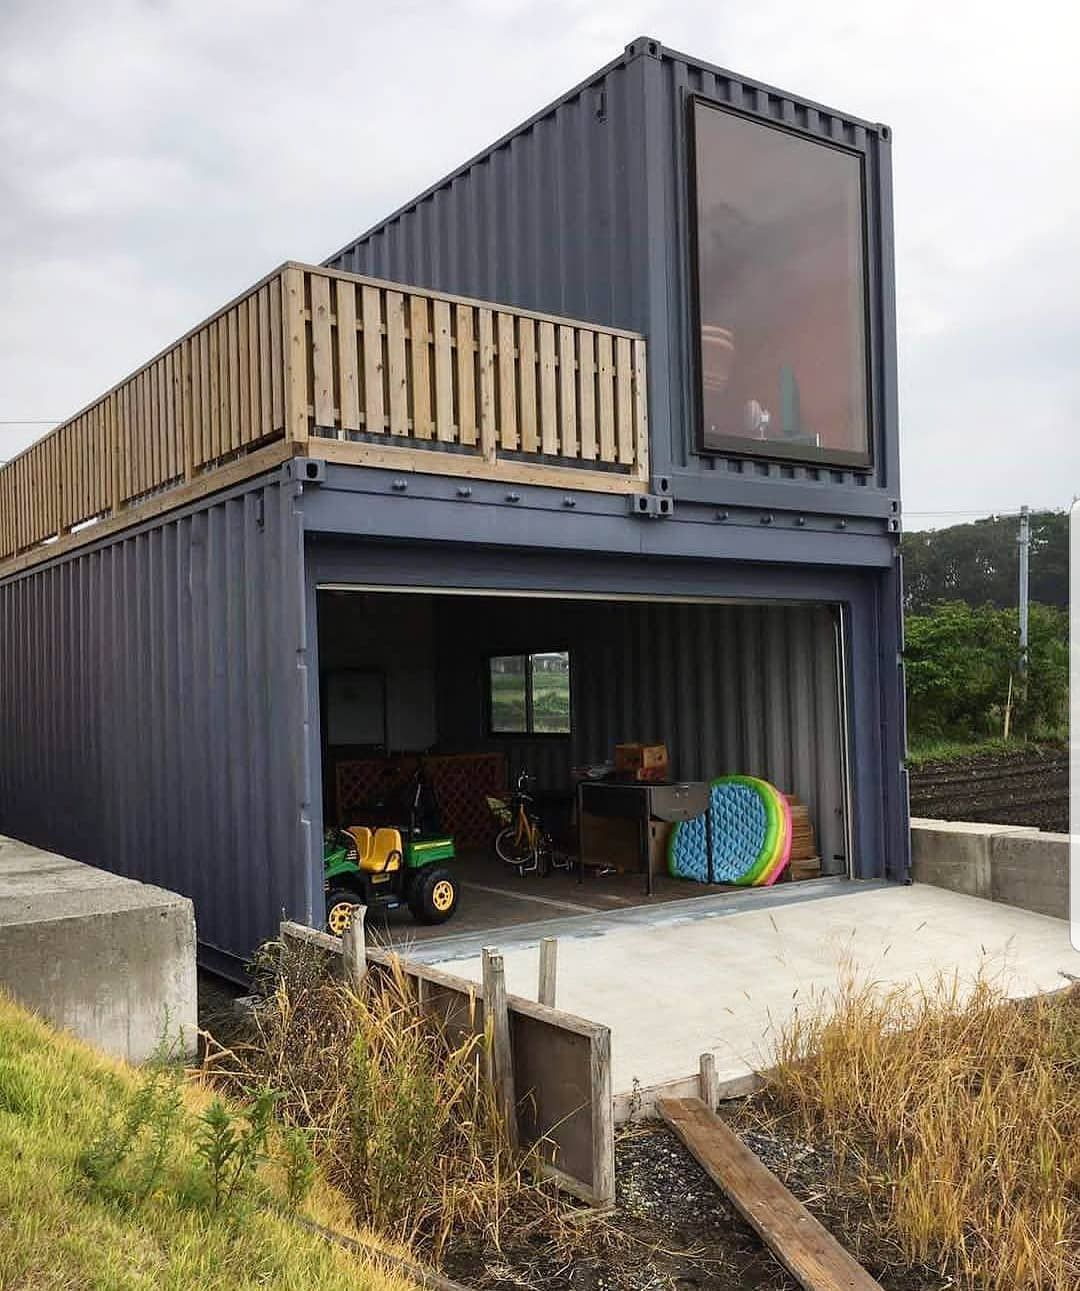 Custom Shipping Container Car Garage: Build A Shipping Container Home And Still Have A Giant